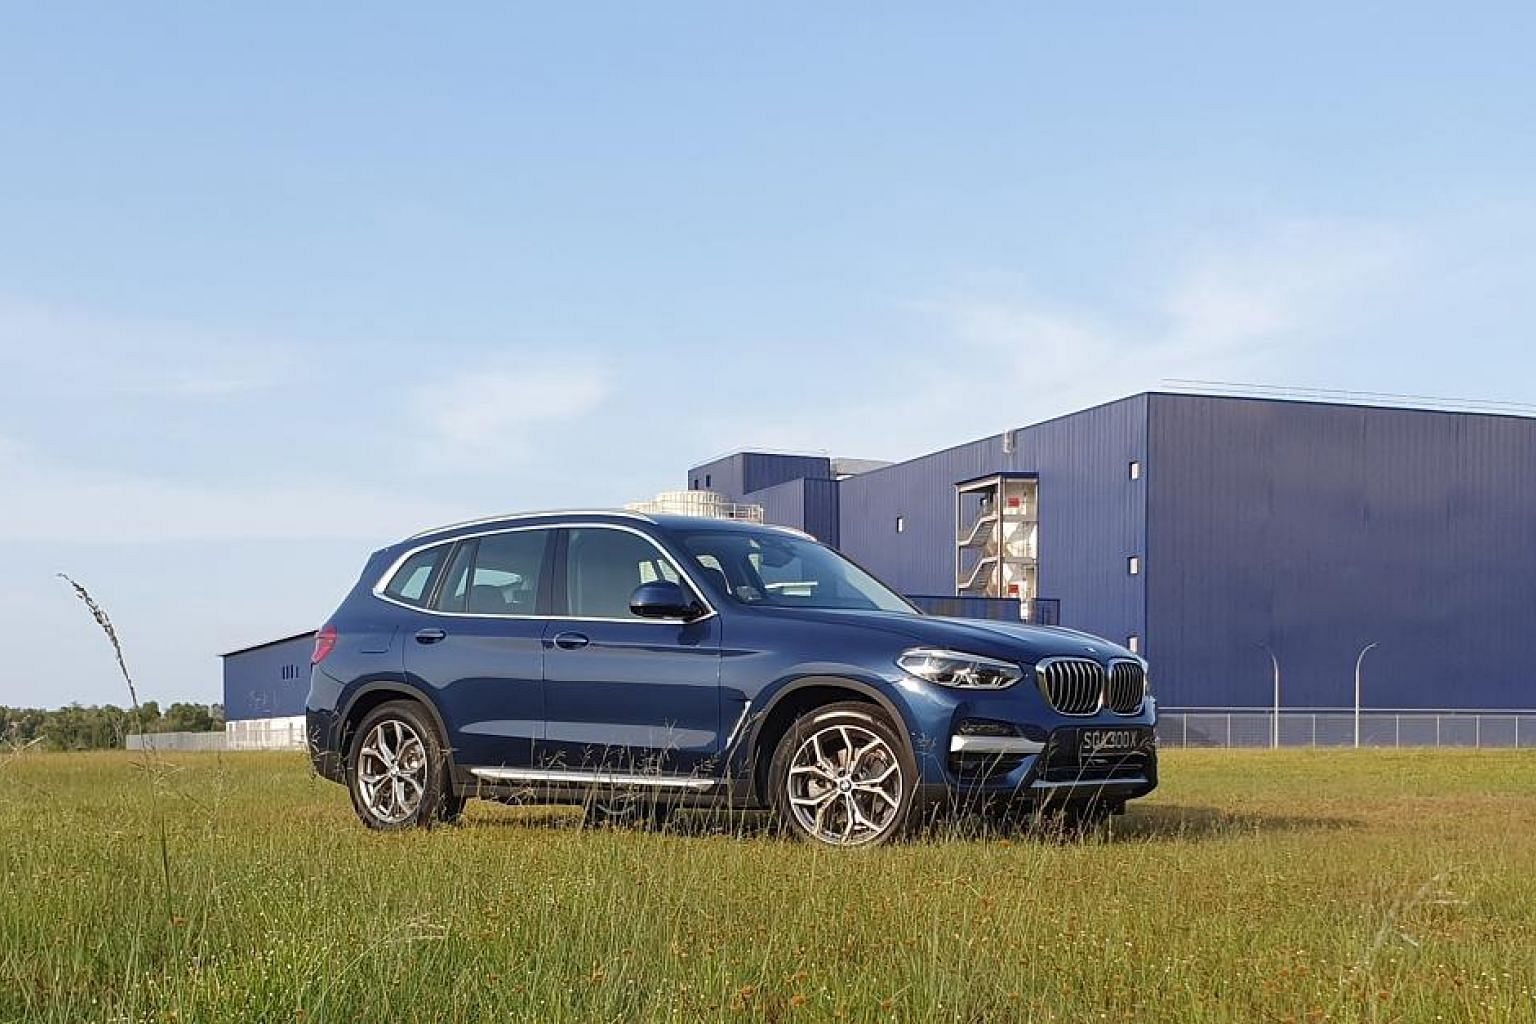 The BMW X3 xDrive30e, after being plugged in overnight, is good for 50km of electric driving, which is adequate for the average motorist here, who clocks 45km a day.